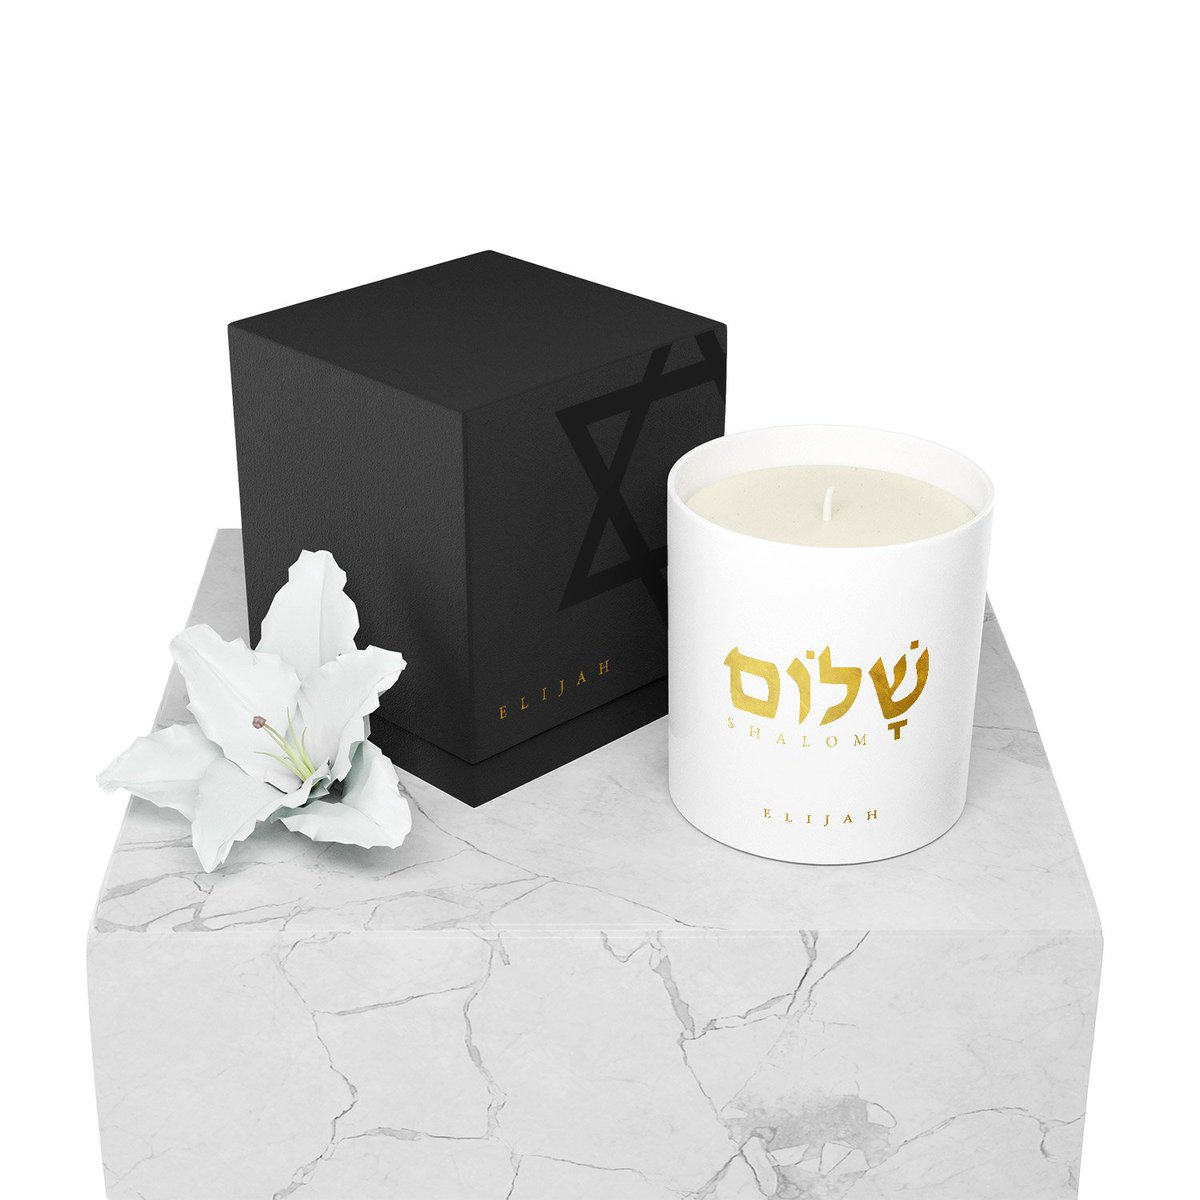 Shalom - a Hebrew word meaning peace. It can also be used as a greeting to mean both Hello and Goodbye and is symbolically representative of tranquility, prosperity, completeness, and much more. 🕊